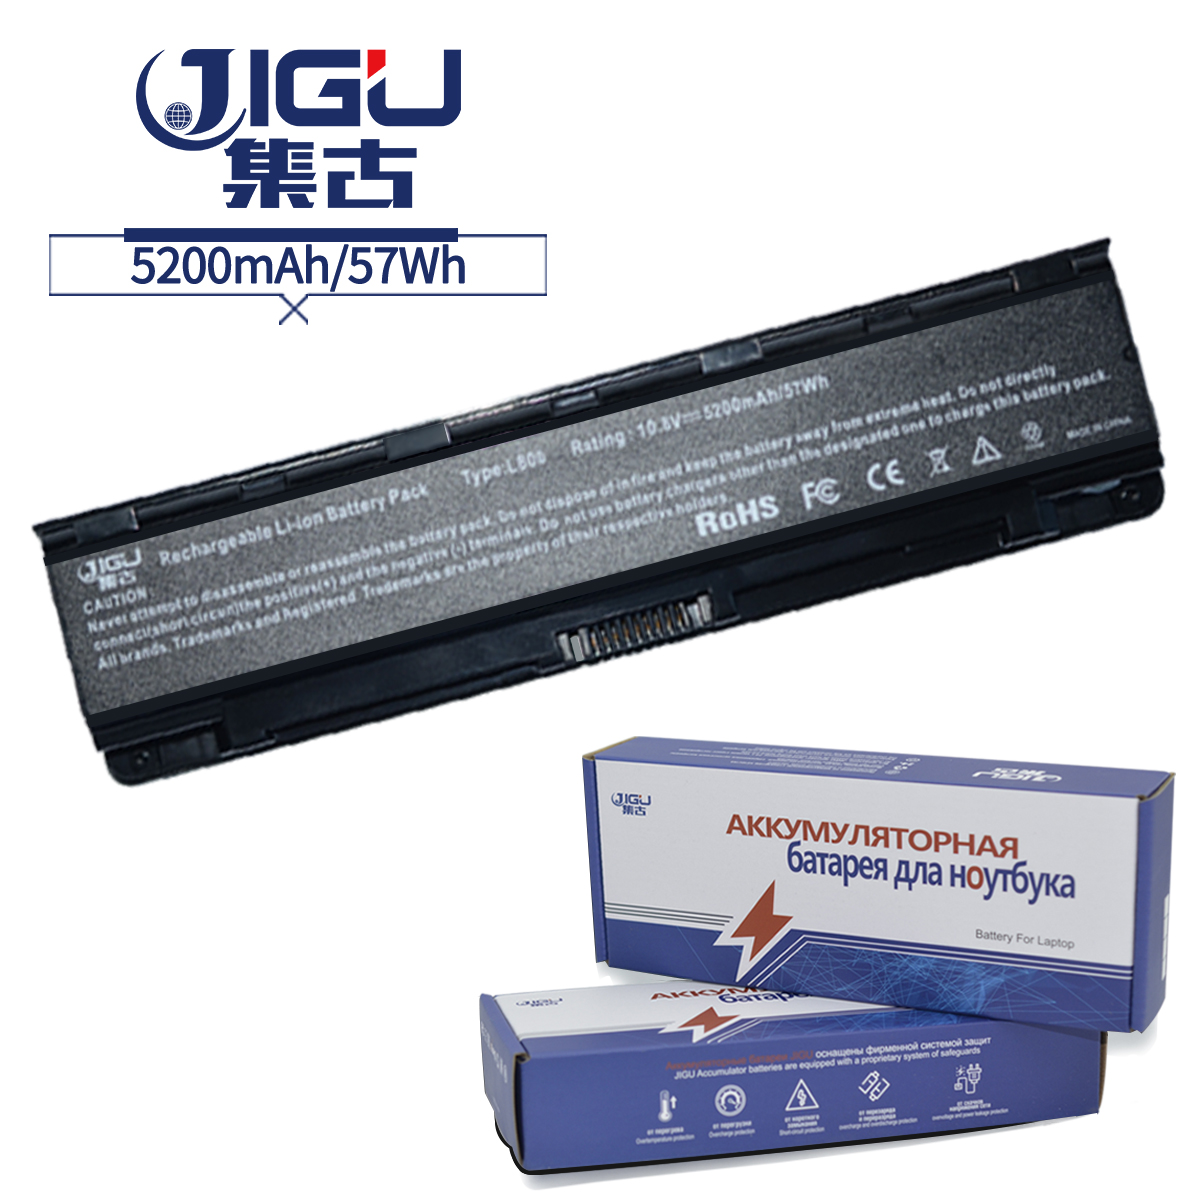 Jigu 6cells Laptop Battery For Toshiba Satellite L870 111 L875 116 Keyboard C805 C800 Series P855 102 S855 043 S875 004 045 Pro C850 00x S850 003